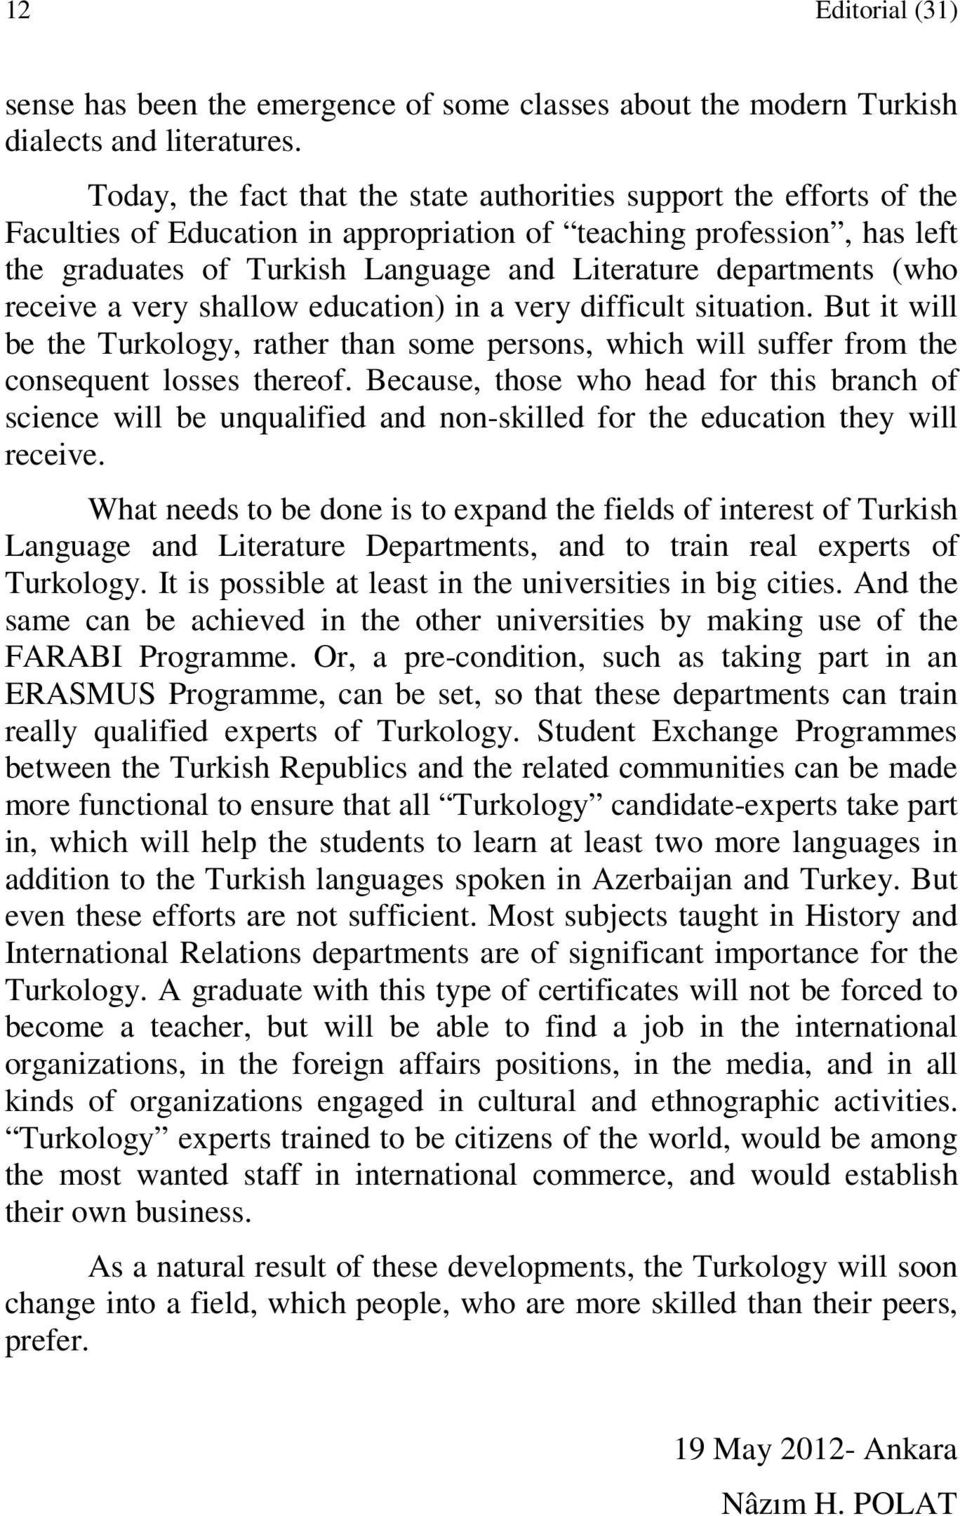 departments (who receive a very shallow education) in a very difficult situation. But it will be the Turkology, rather than some persons, which will suffer from the consequent losses thereof.